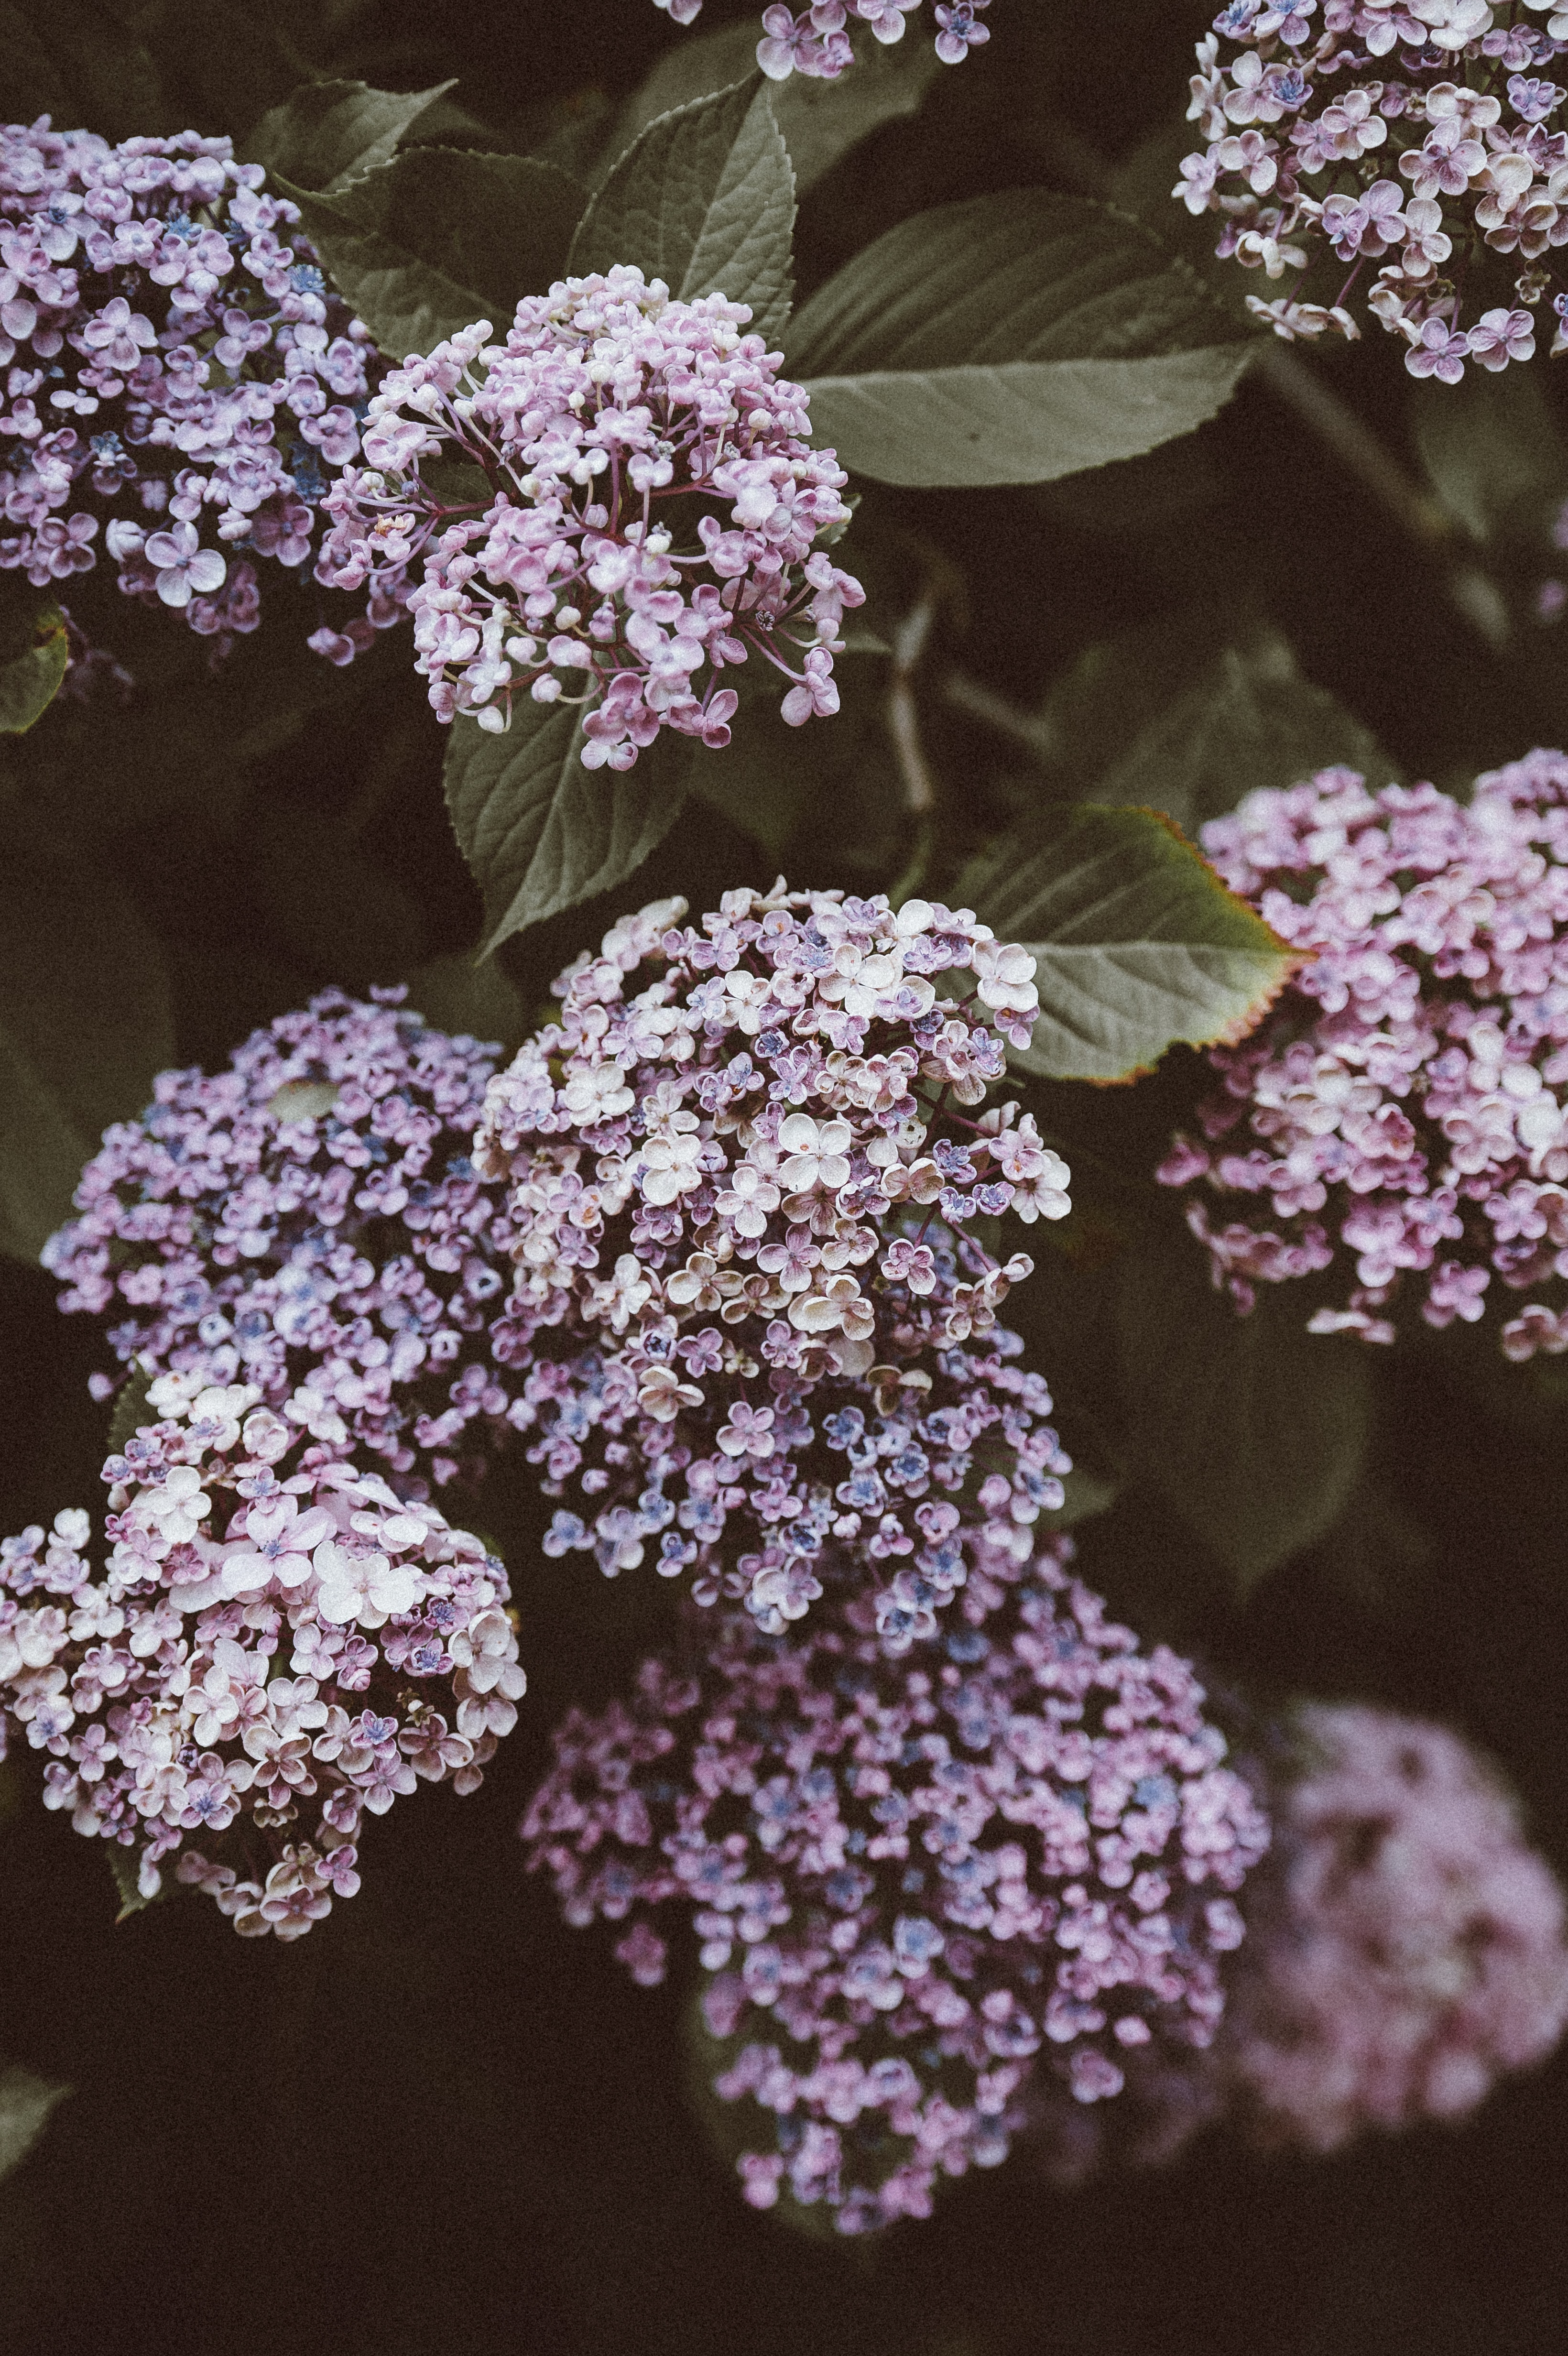 shallow-focus photography of purple flowers